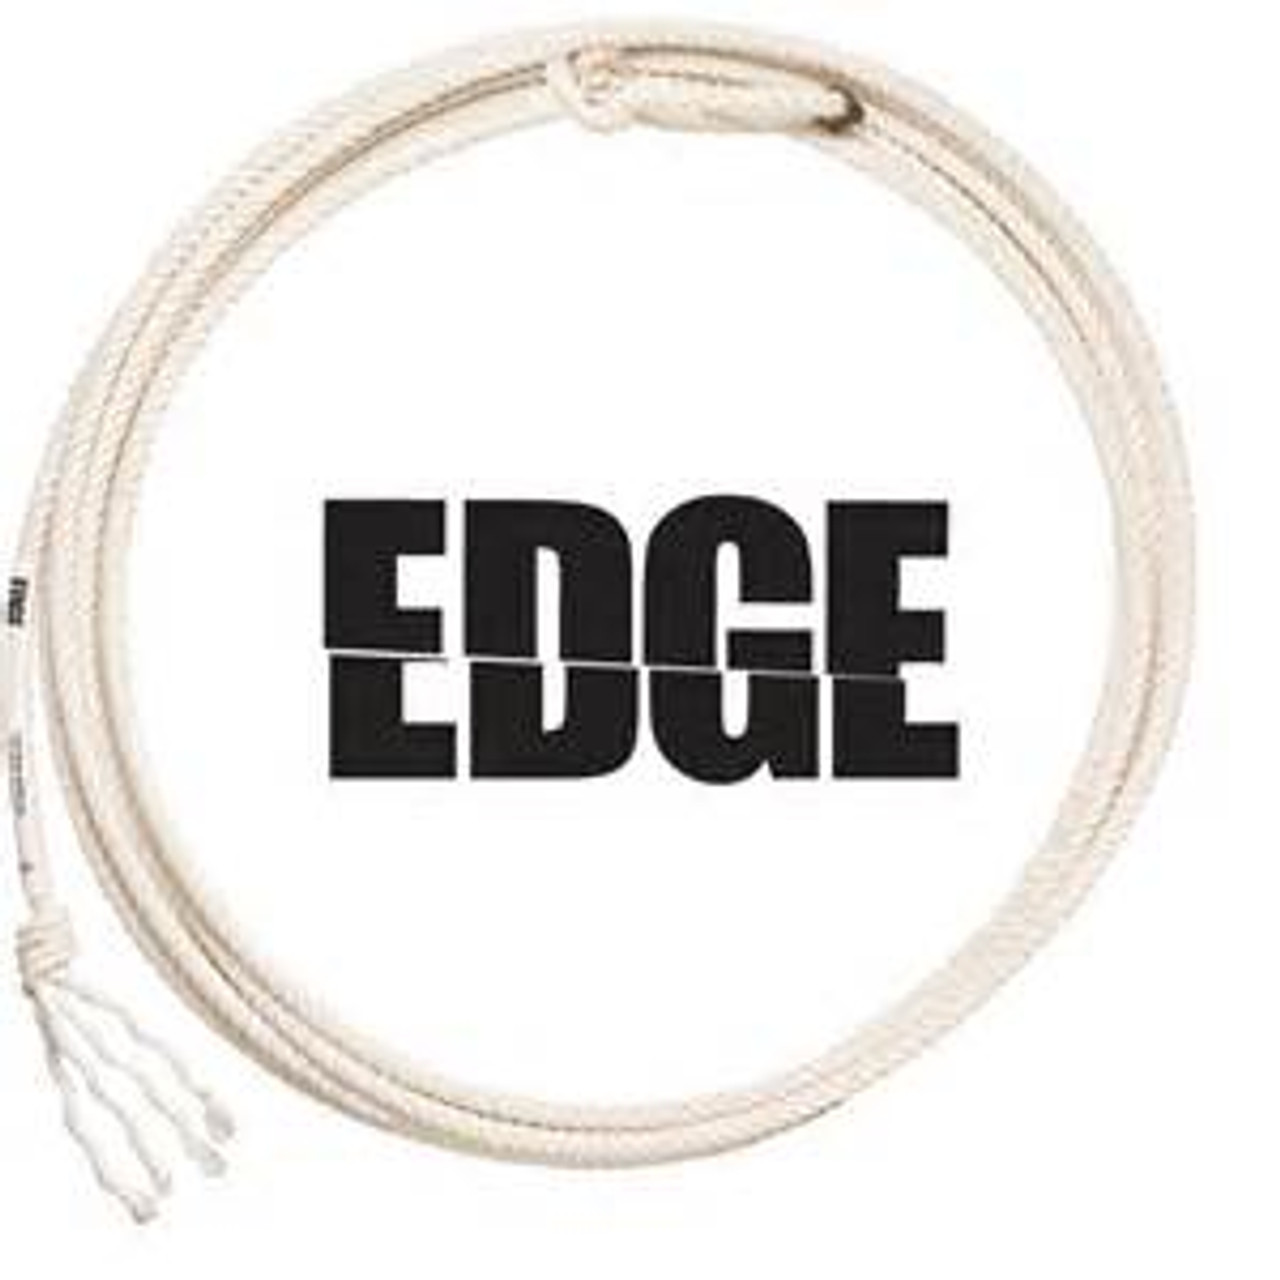 Edge The Edge is a four-strand white poly calf rope made from 100% American made texturized poly fiber. Stays true in all weather conditions. After breaking in, there is very little stretch and they are extremely durable. Smooth and quick with a lot of action. Very low maintenance.  Stays true in all weather Little stretch Low maintenance Extremely durable Smooth and quick 4-STRAND 100% Texturized Poly AVAILABLE IN: Calf Ropes LAYS: XS S LENGTH: 29 DIAMETER: 9.0, 9.5, 10.0, 10.25, 10.5, 10.75 EVENT: Tie-Down, Breakaway, Steer Roping